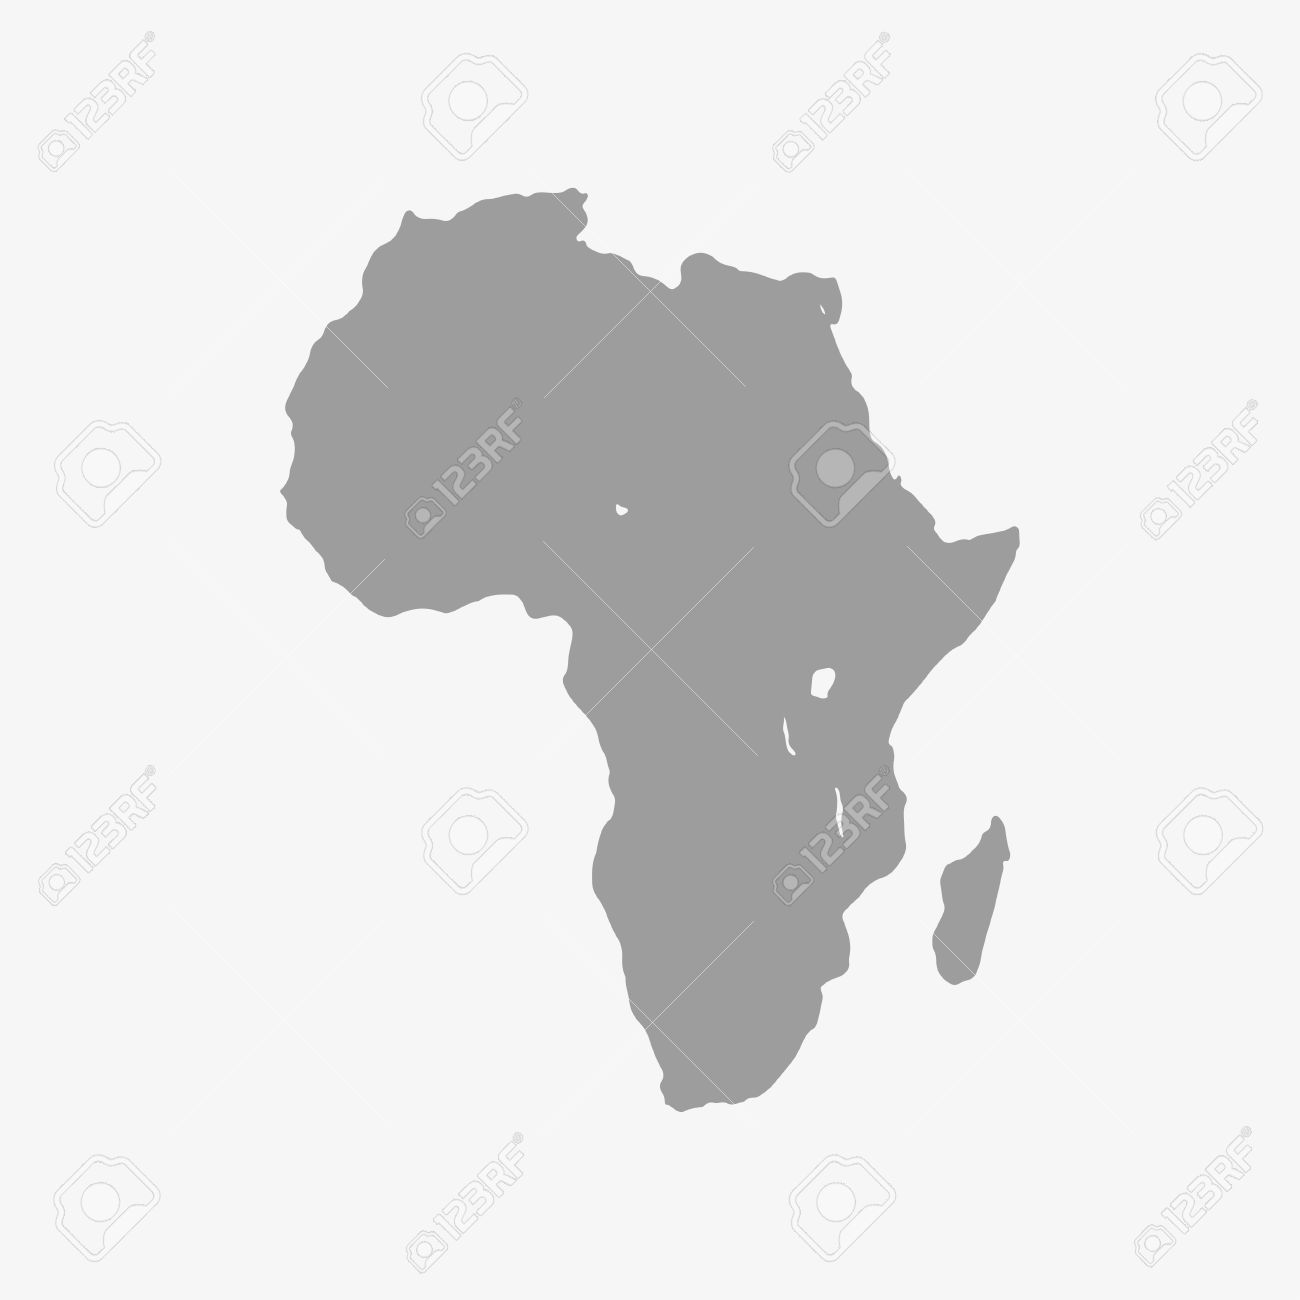 Map Of Africa Continent In Gray On A White Background Royalty Free